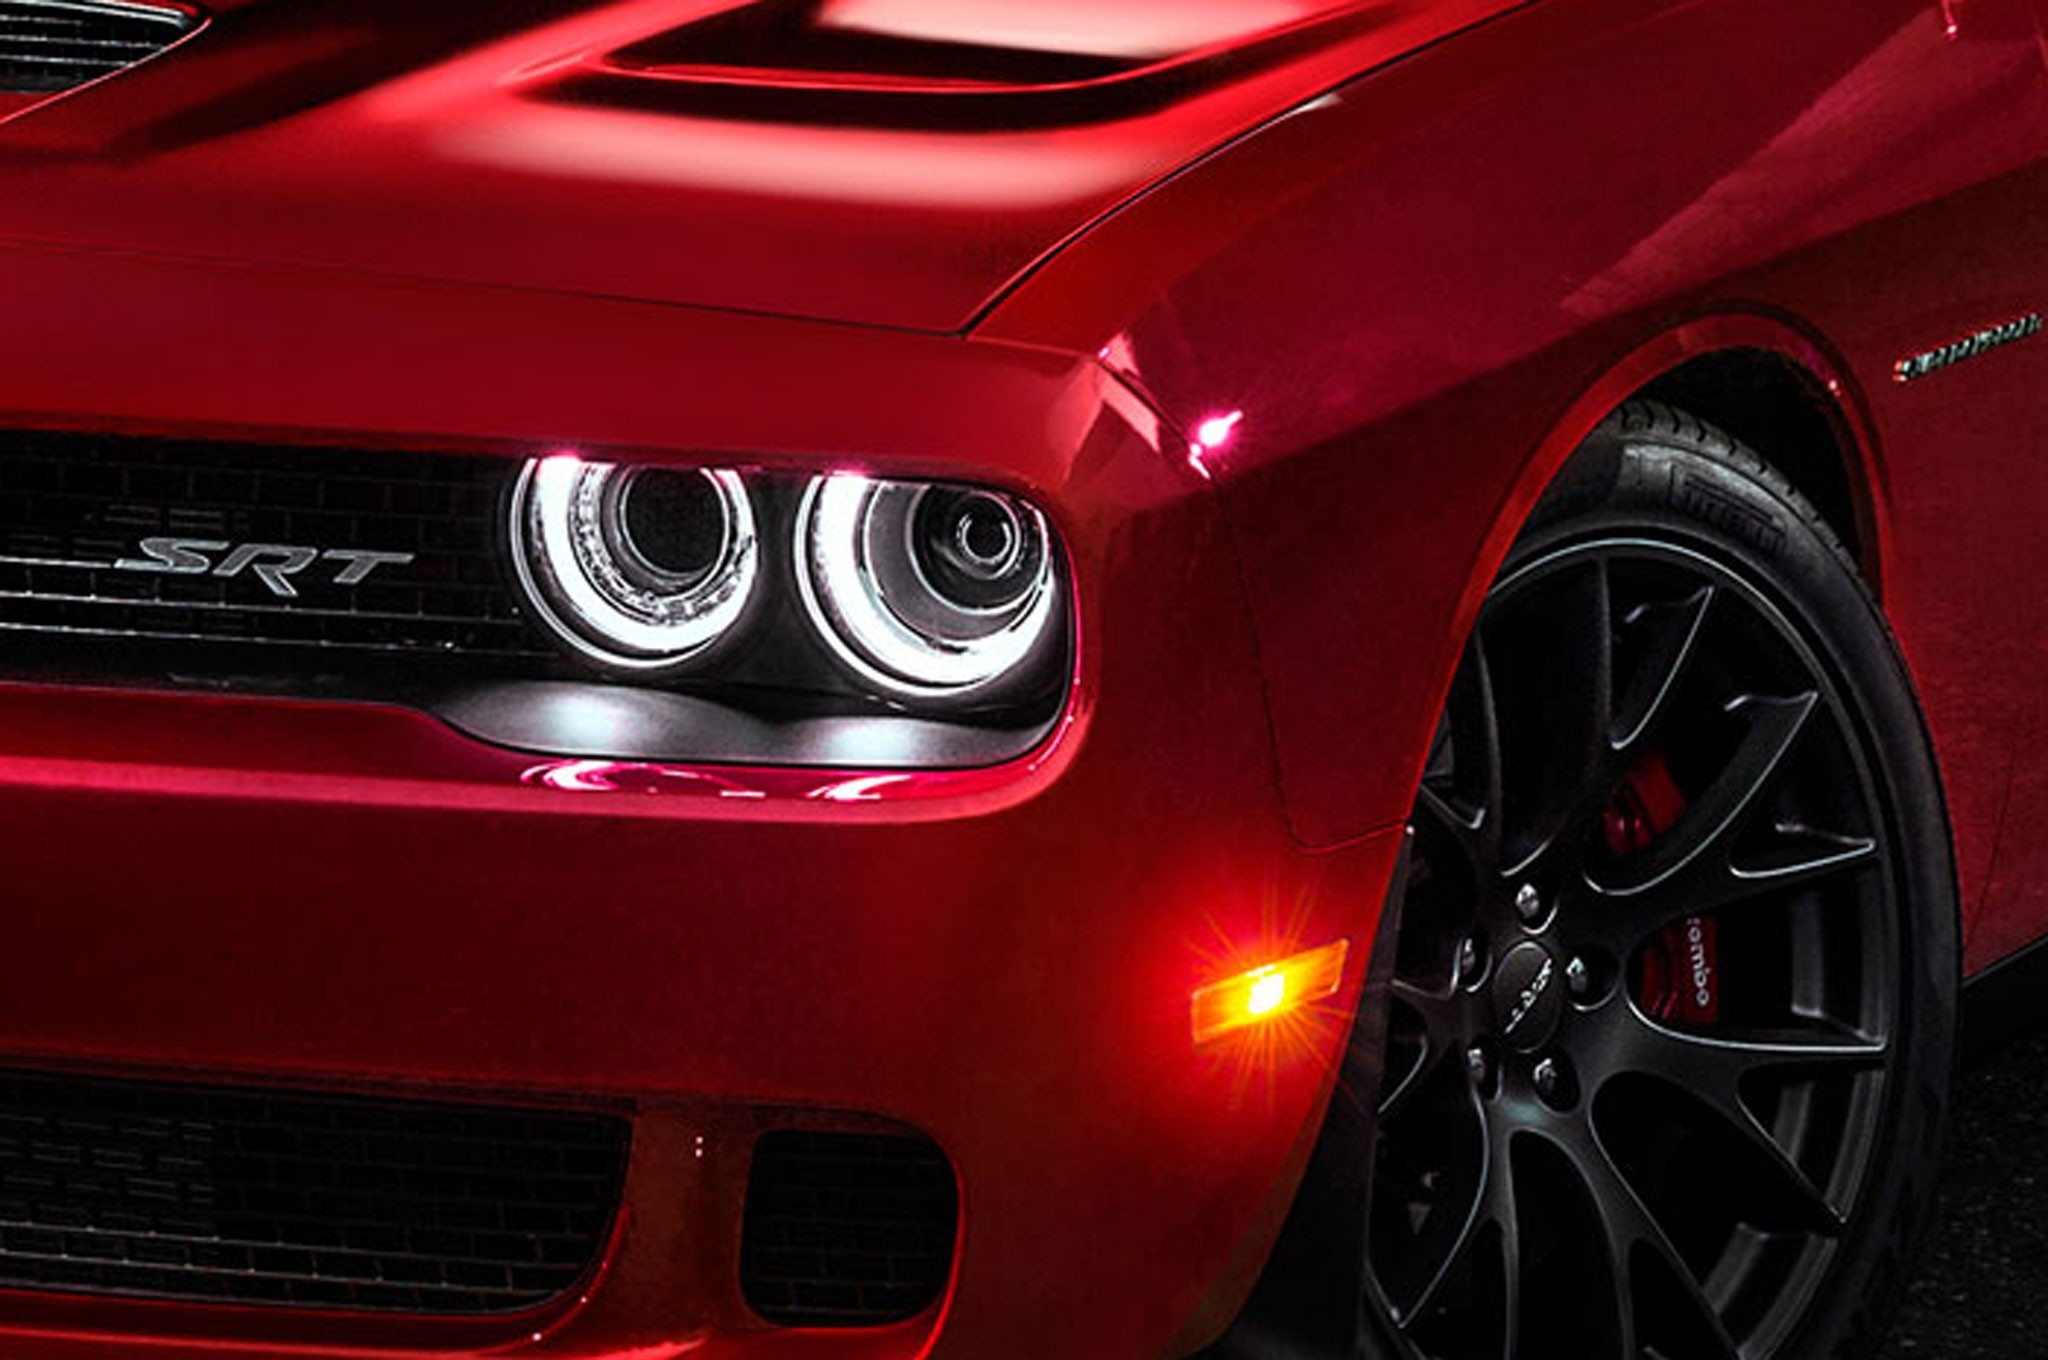 2048x1360 2015 Dodge Challenger SRT8 Hellcat Headlight Wallpaper